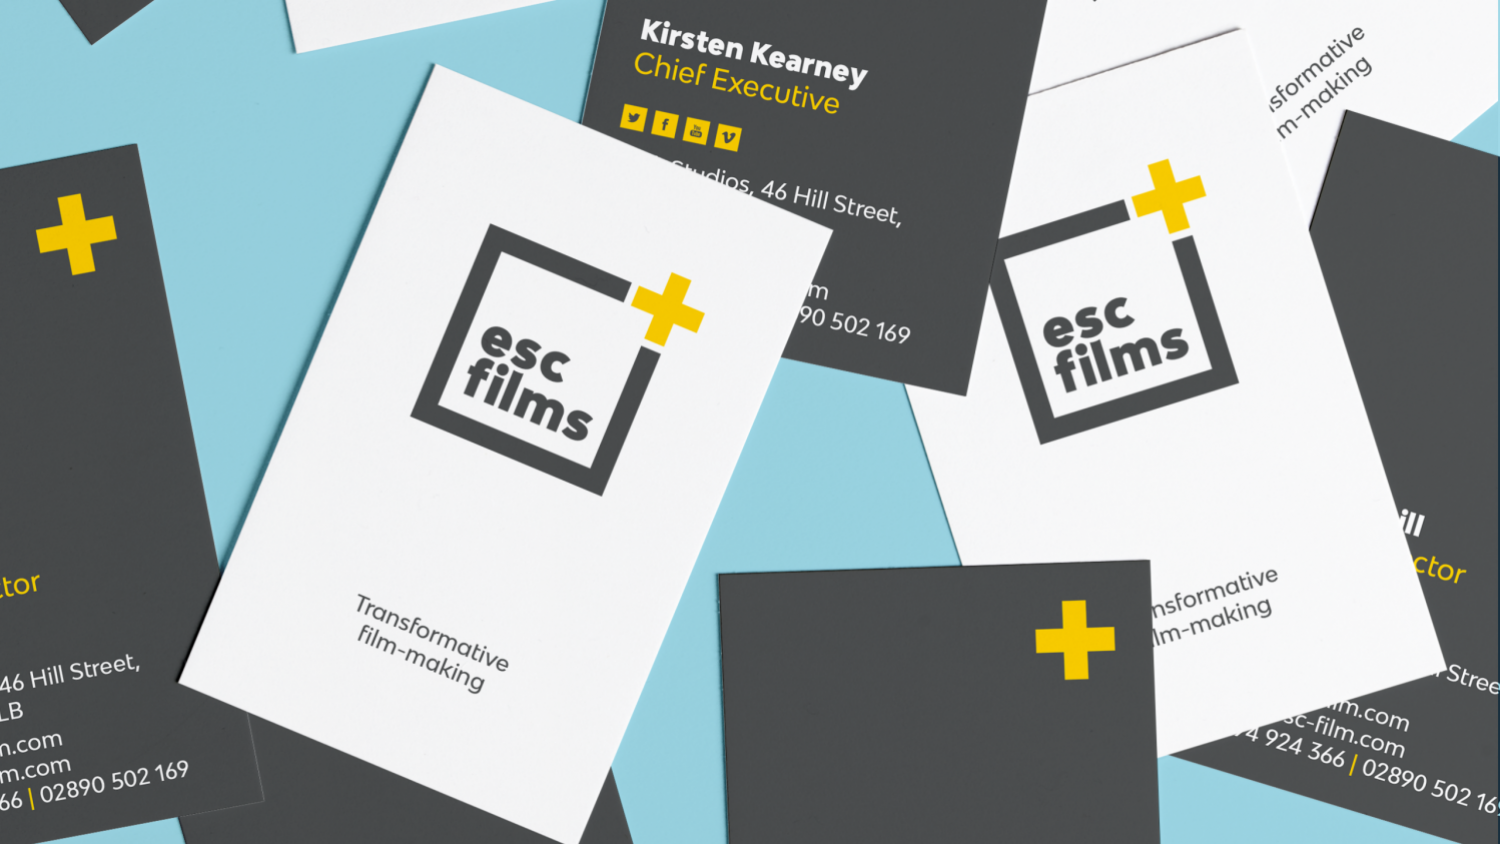 lots of grey and white business cards scattered on blue background with esc films logo and details